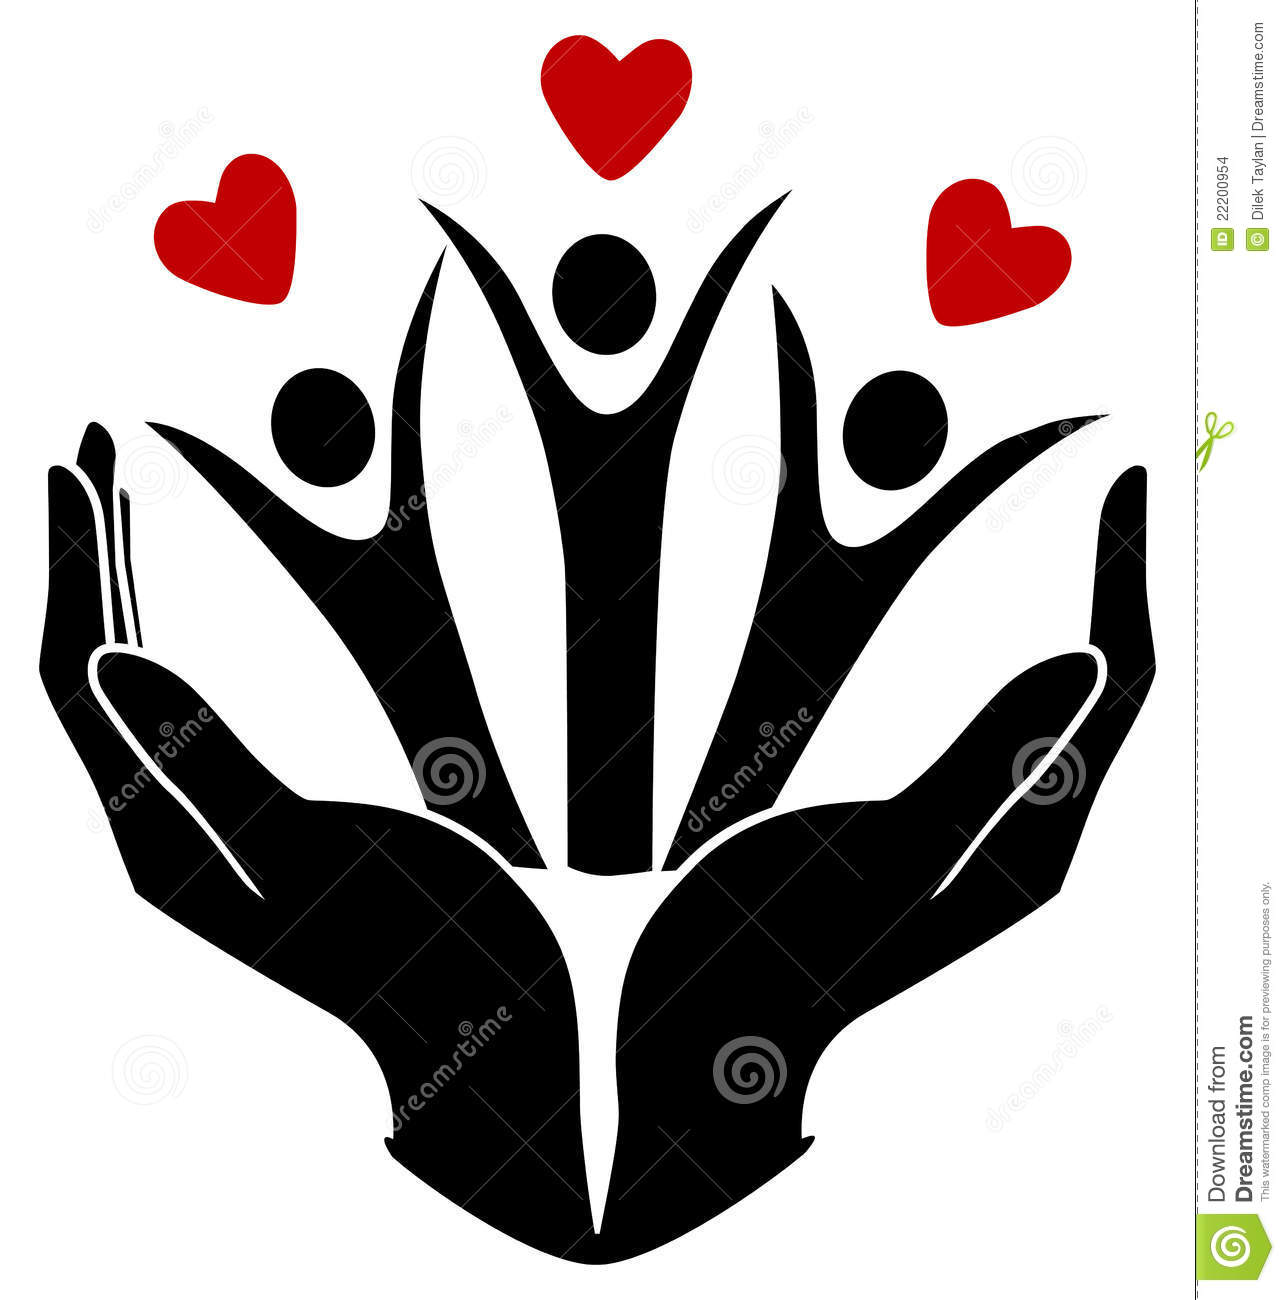 1285x1300 Helping Others Clipart